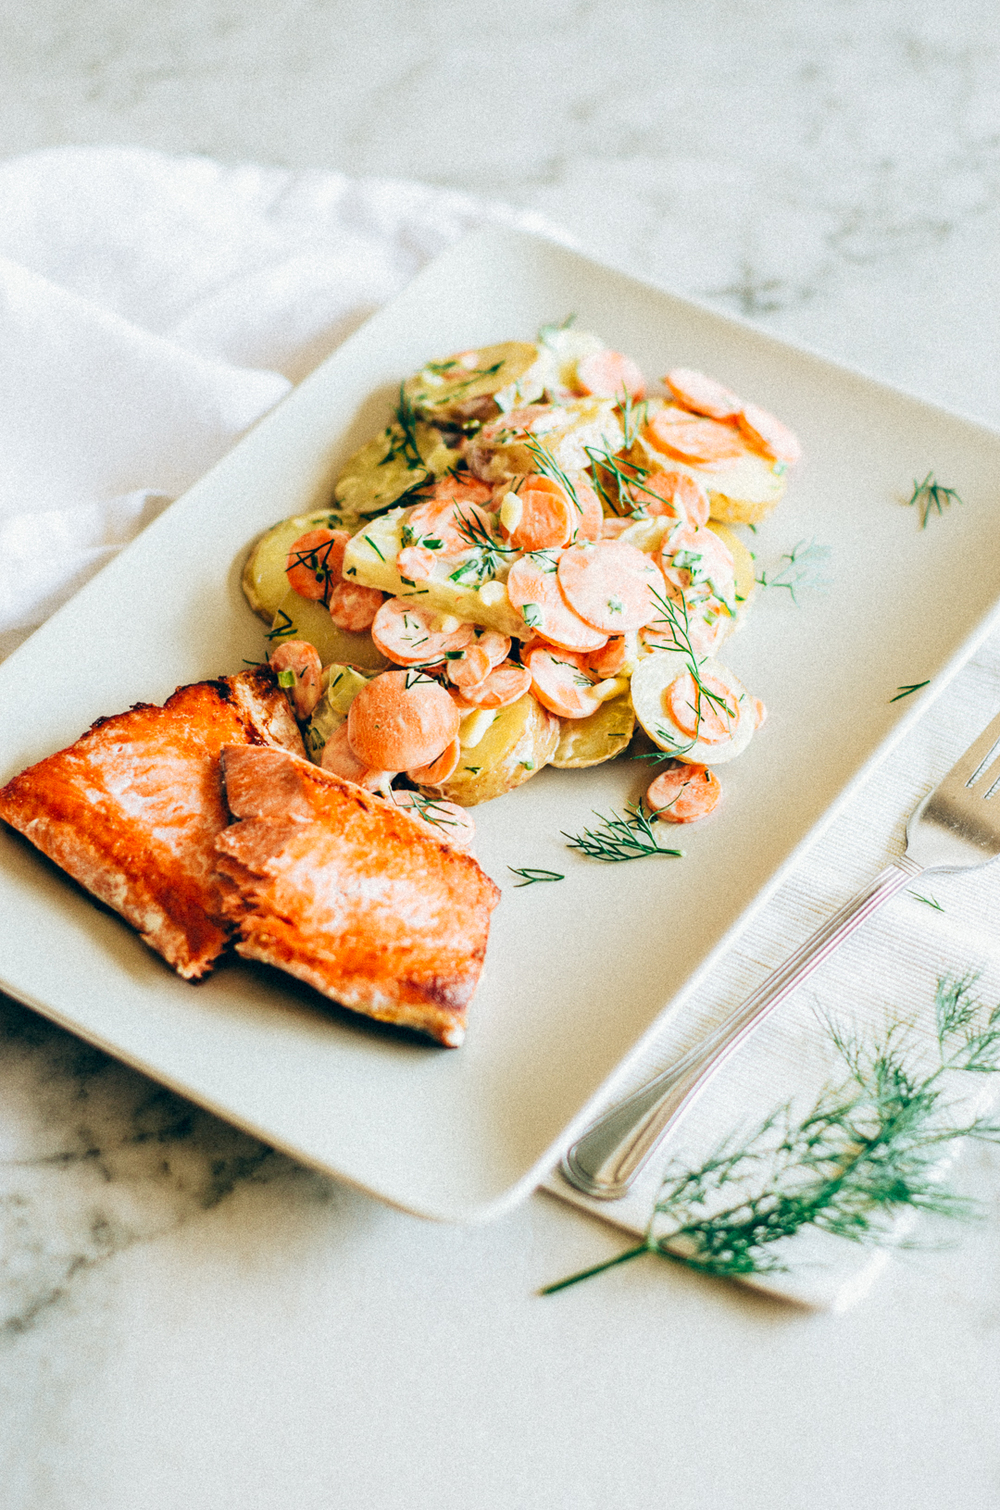 20 Minute Salmon Dinner with carrot & potato salad recipe. Enjoy this super simple recipe for dinner tonight